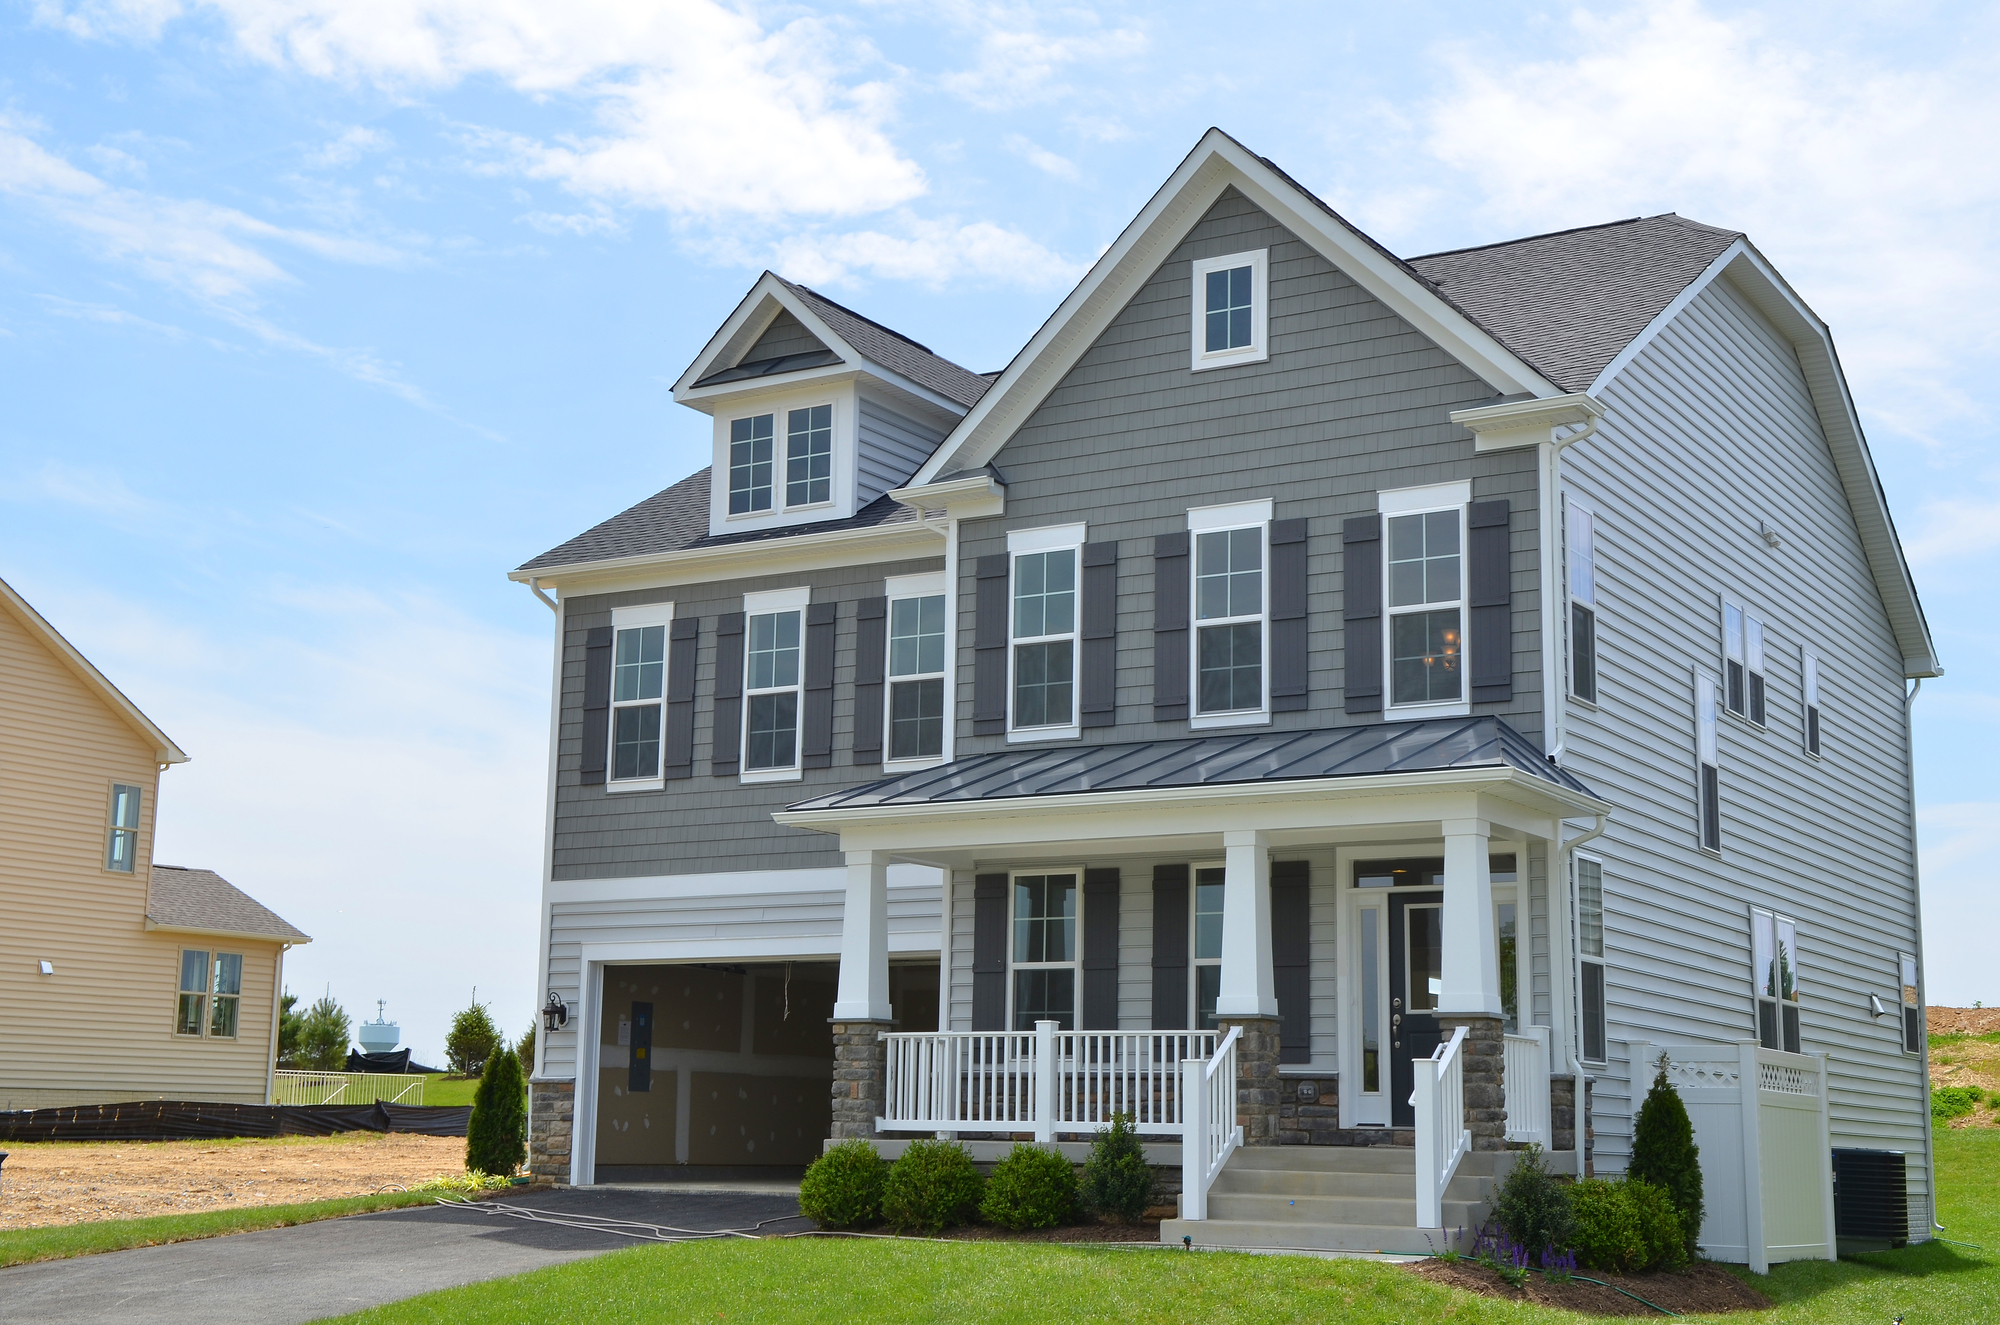 Steel vs shake siding which is better for your home Fiber cement siding vs vinyl siding cost comparison